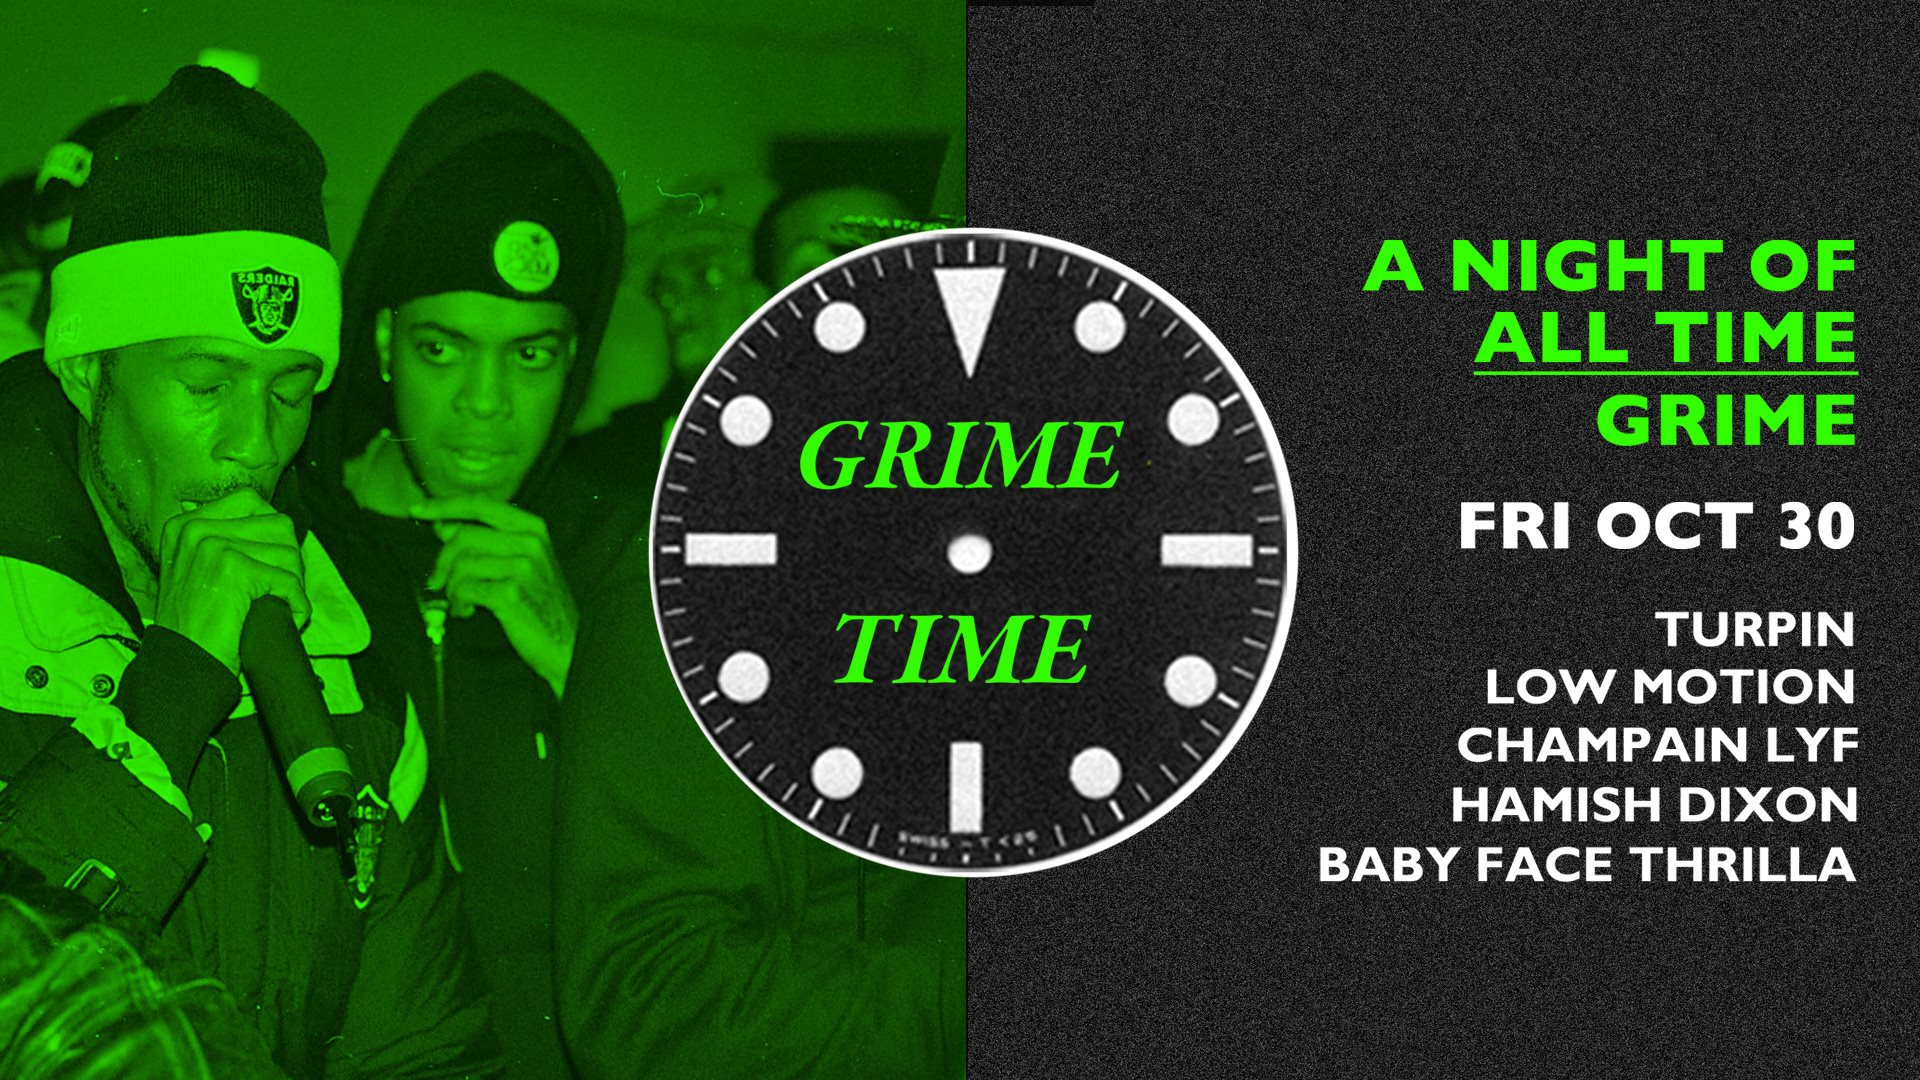 Danceteria, Goodgod Small Club, 11pm-3am    Back for round two, Goodgod is getting grimey again with the realest, dirtiest tracks from the early 2000s onwards. Tunes provided by Champain Lyf, Baby Face Thrilla (Low Ton), Low Motion (FBi) and more!  Moneys? $15 on the door